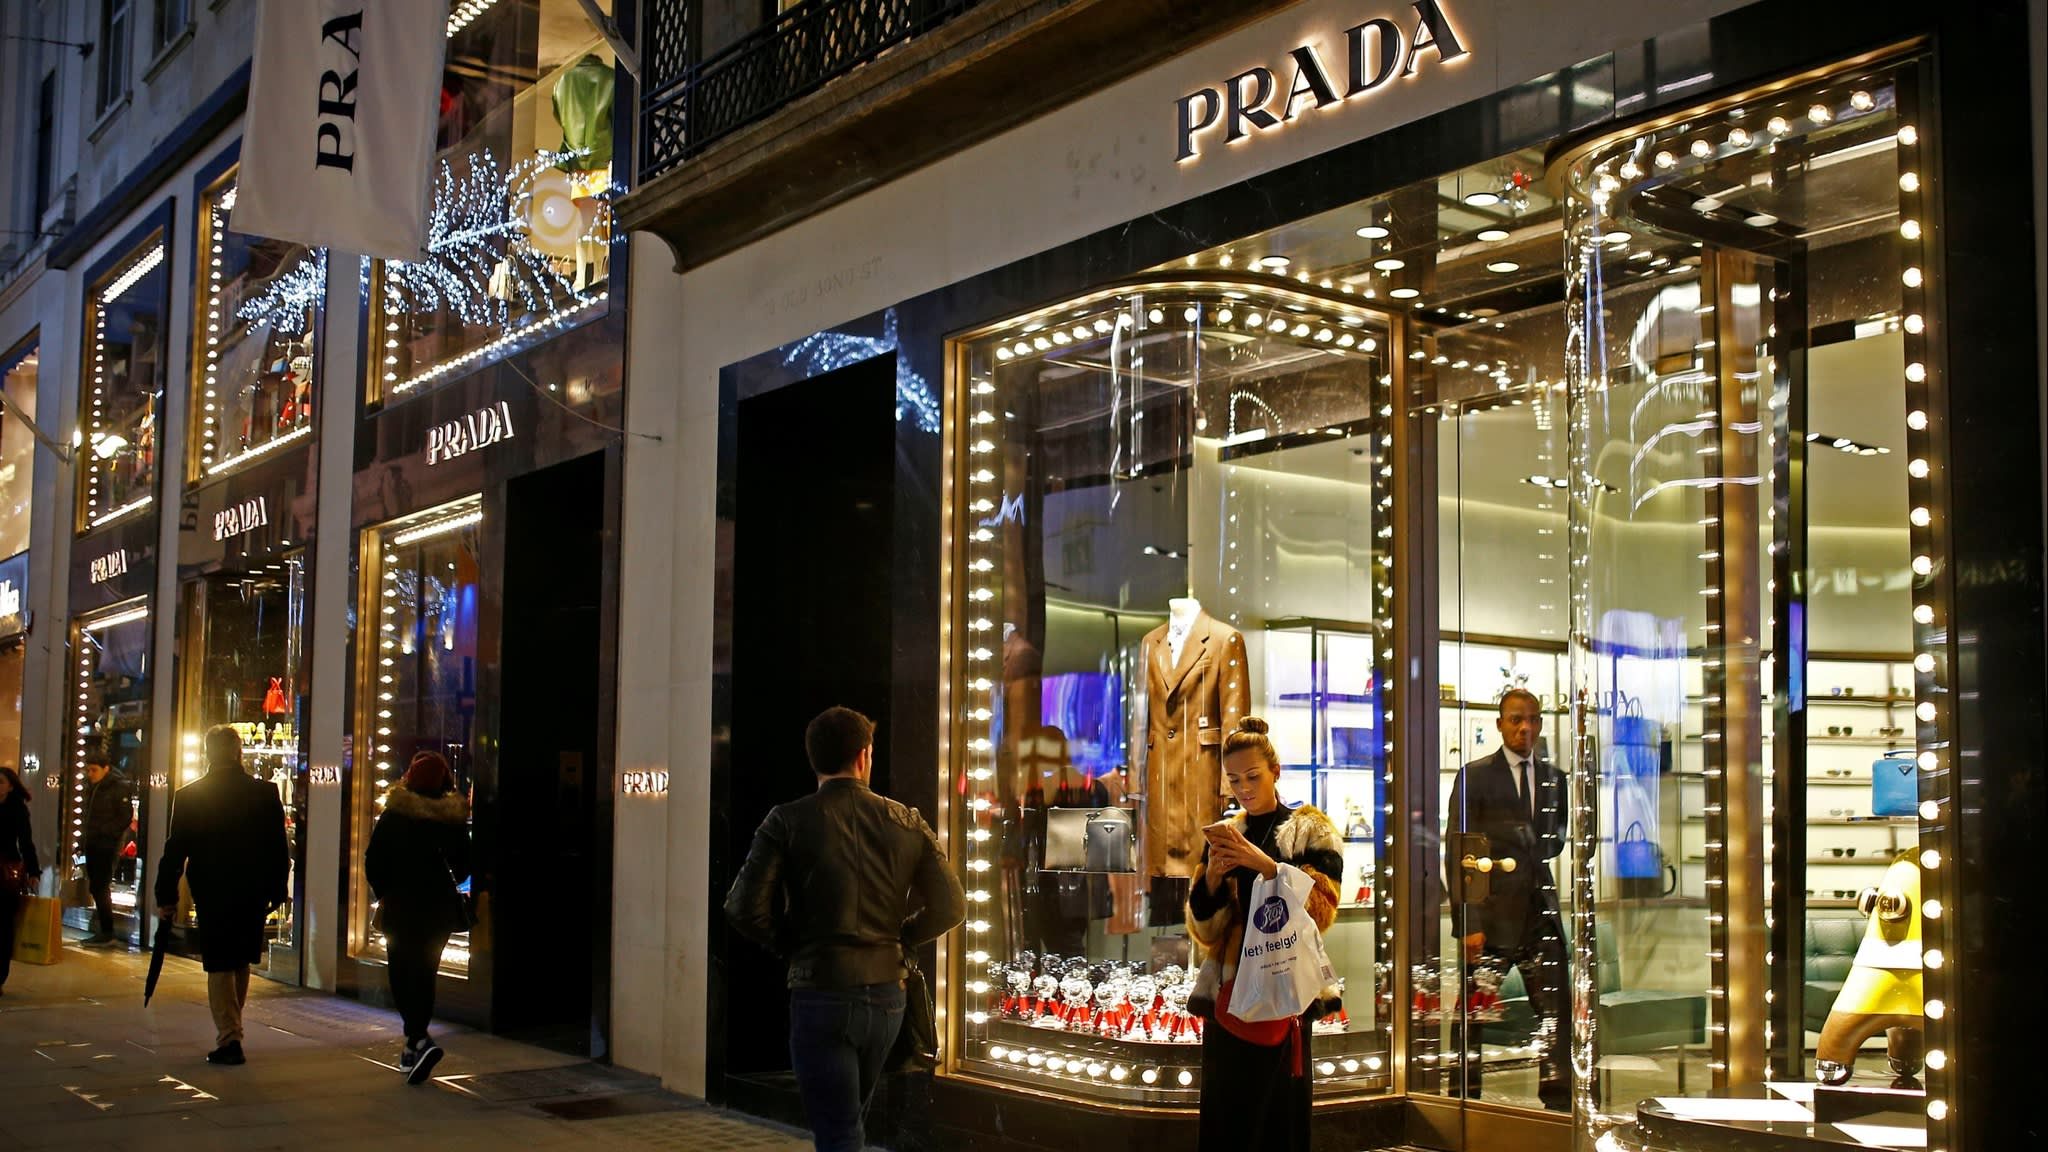 Prada shares tumble 9% after analysts trim target price | Financial Times